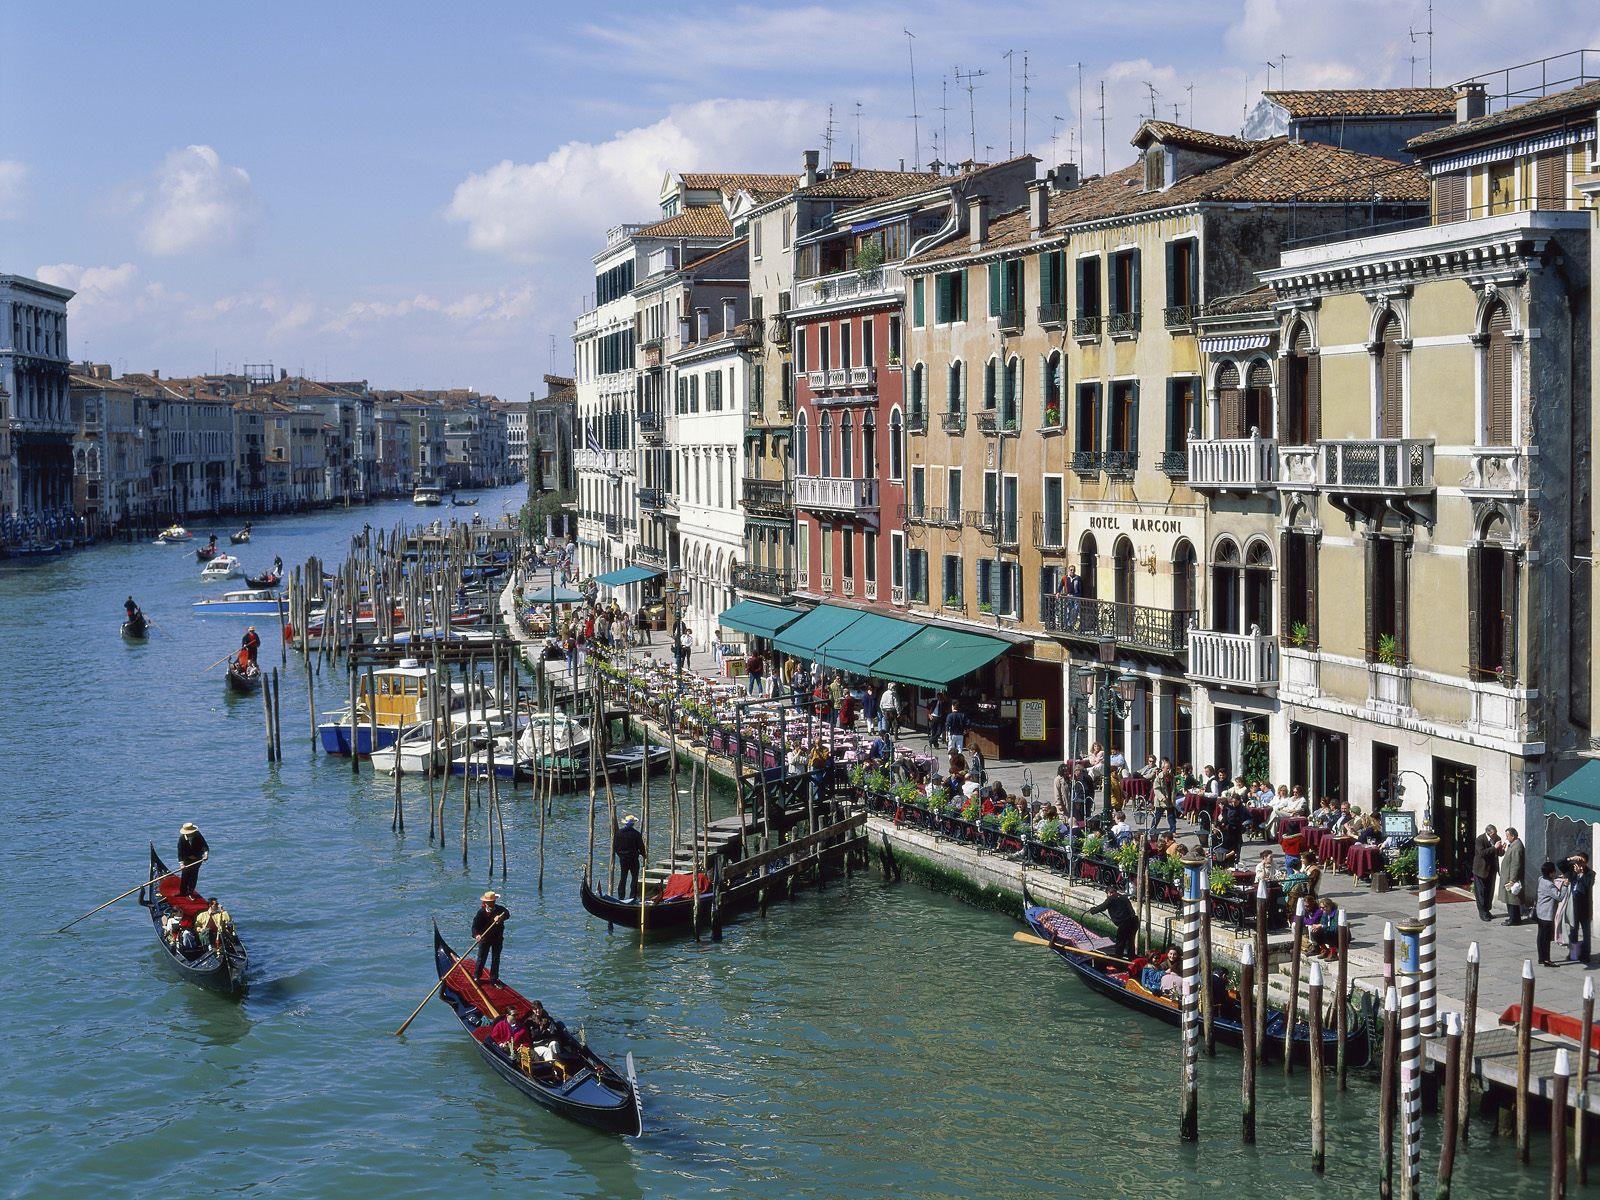 The Grand Canal of Venice Italy 706.96 Kb